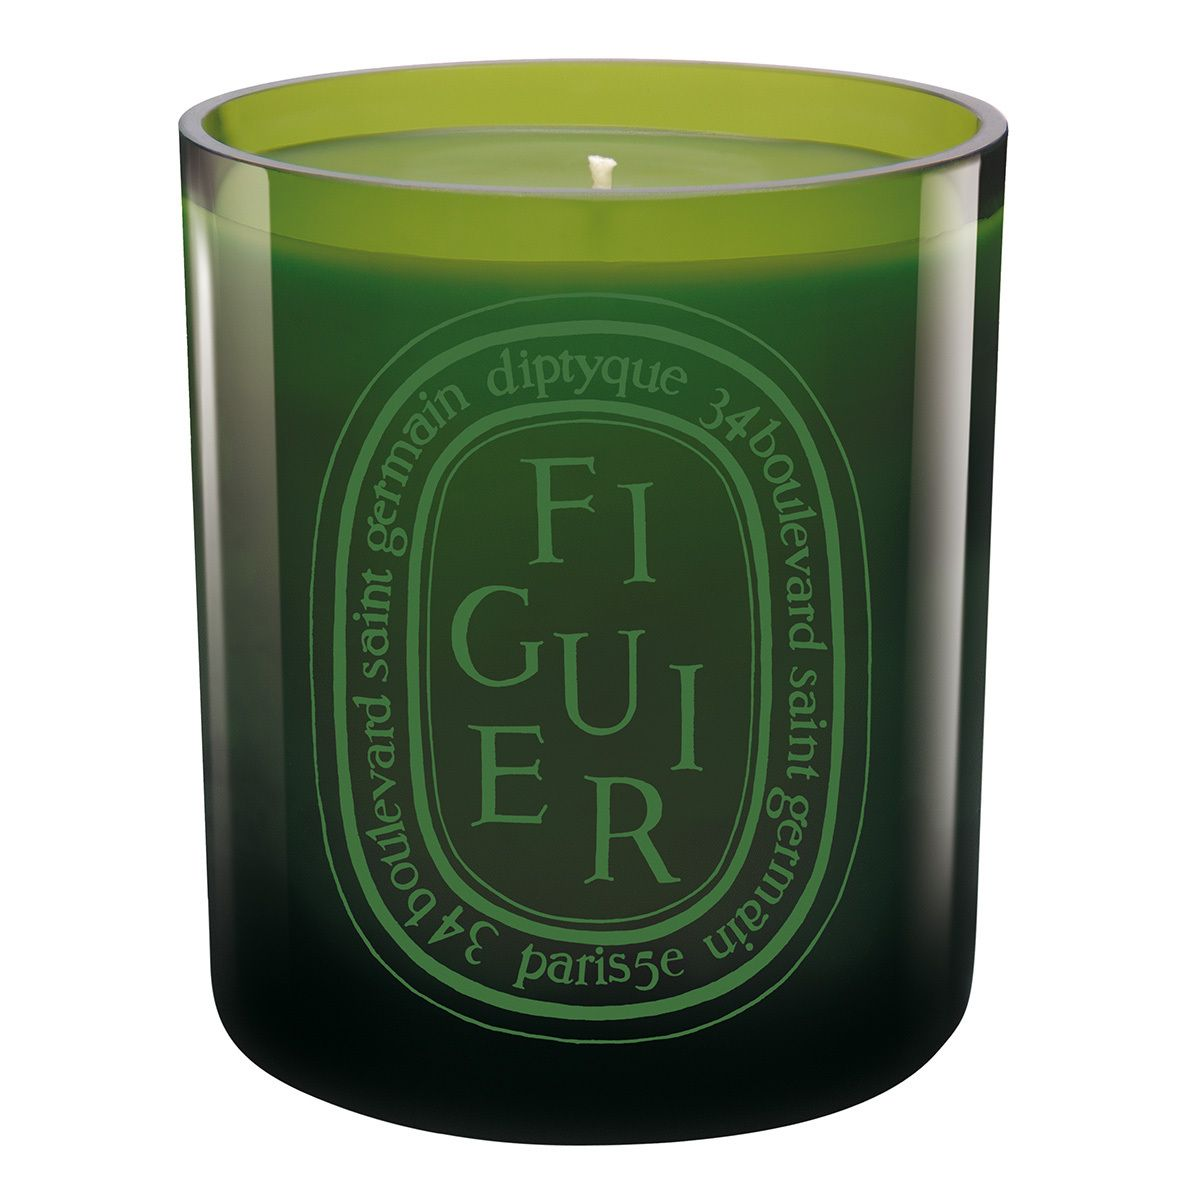 Green Figuier Candle by DIPTYQUE - Related to Diptyque's Philosykos Eau De Toilette, Figuier intensifies the fig tree's qualities: the warmth of the bark, the freshness of the leaves and the milky sap of its fruit. Poured in a stunning green glass jar, the Figuier Candle is a beautiful addition to any room.